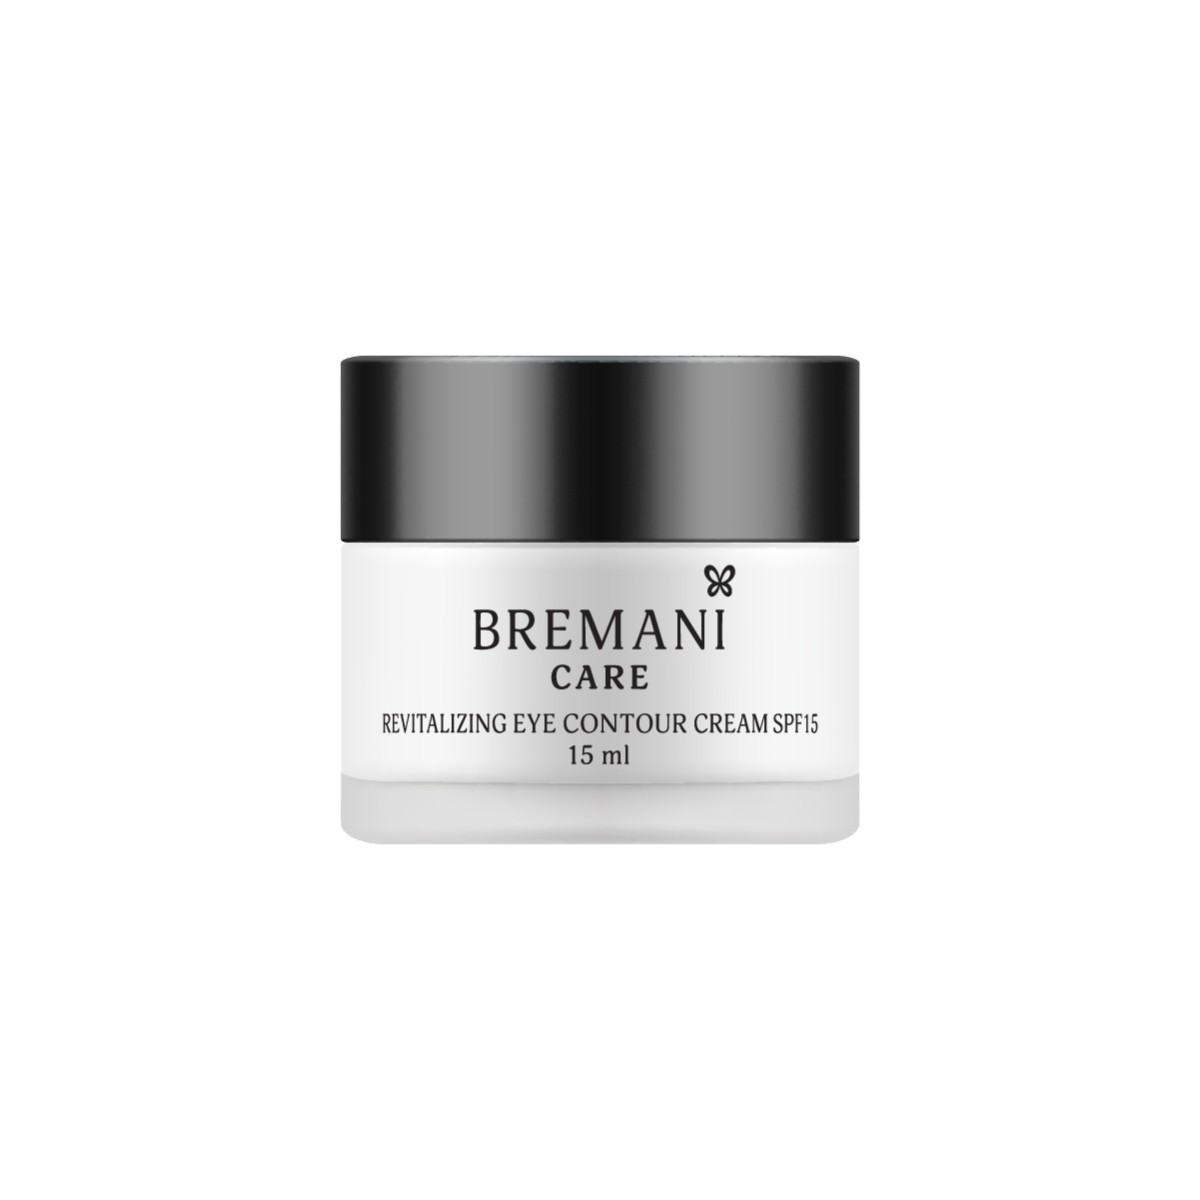 Revitalizing Eye Contour Cream SPF15